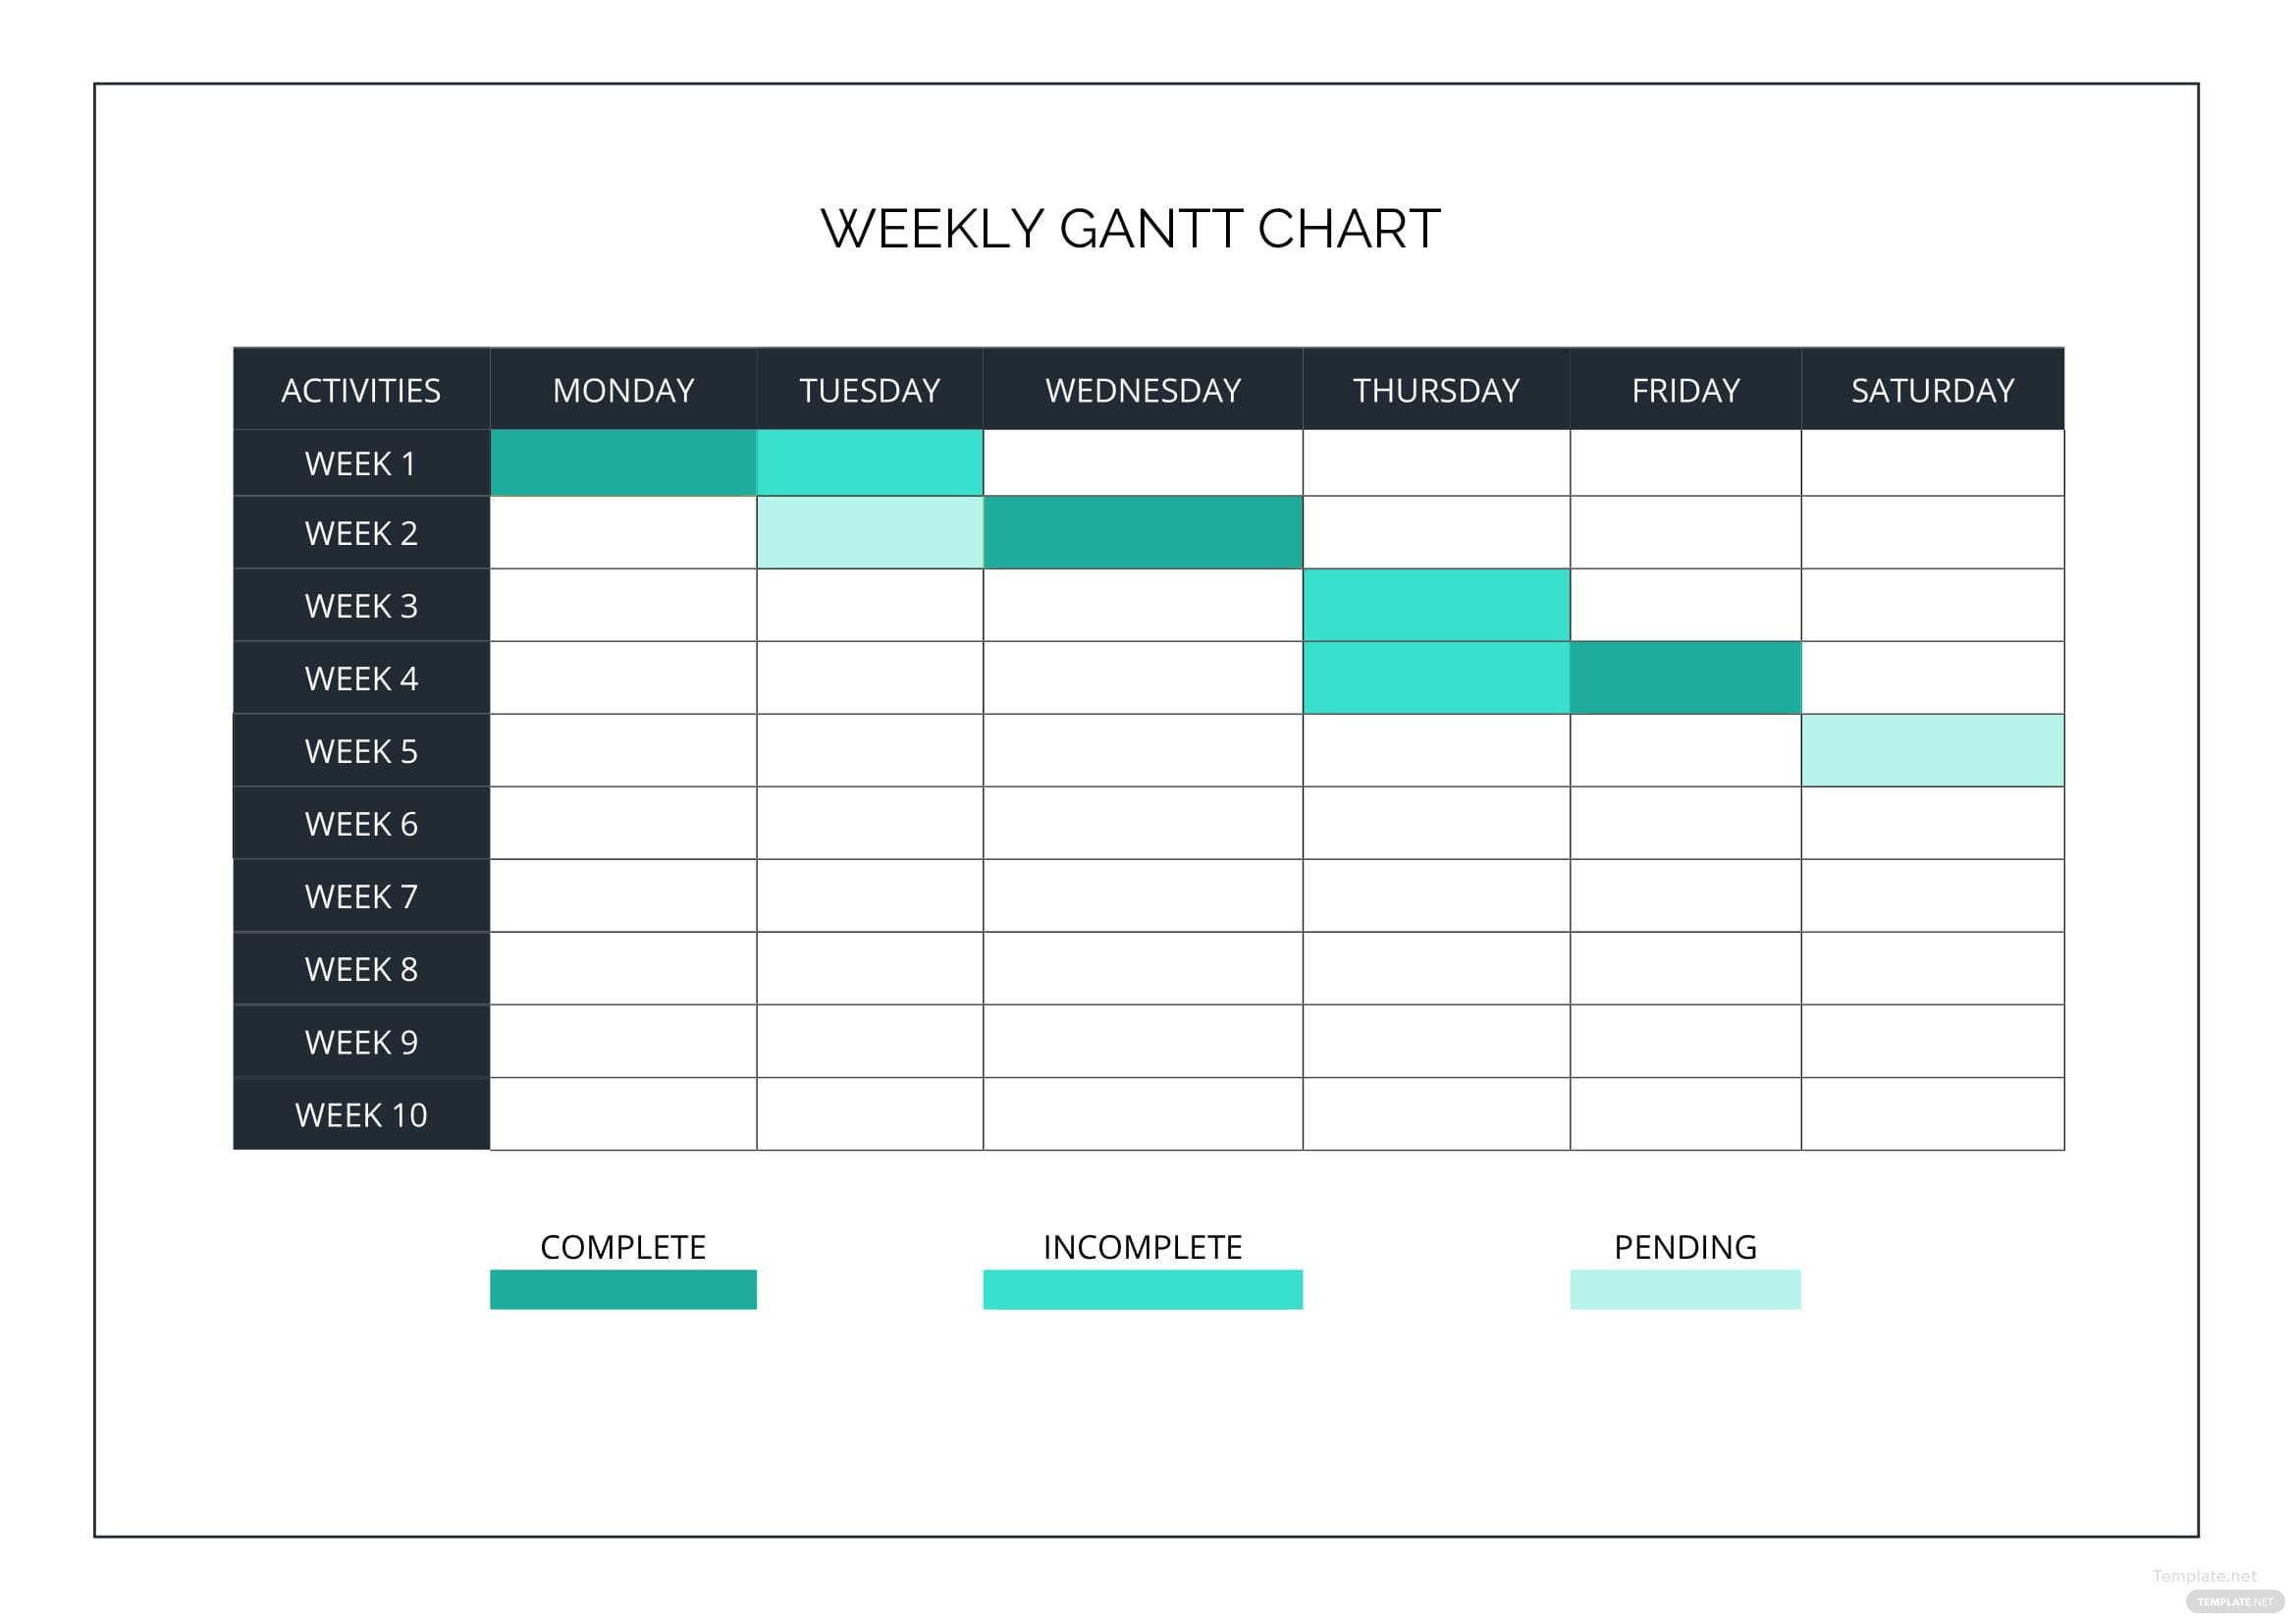 weekly gantt chart template in microsoft word excel. Black Bedroom Furniture Sets. Home Design Ideas